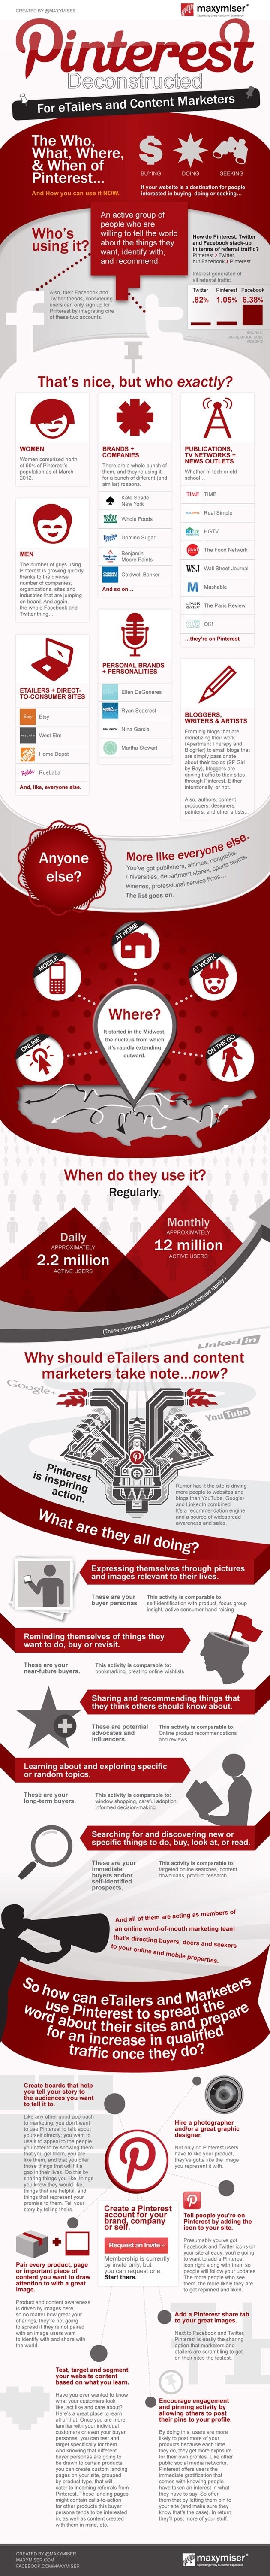 Pinterest Deconstructed For eTailers and Content Marketers [Infographic]